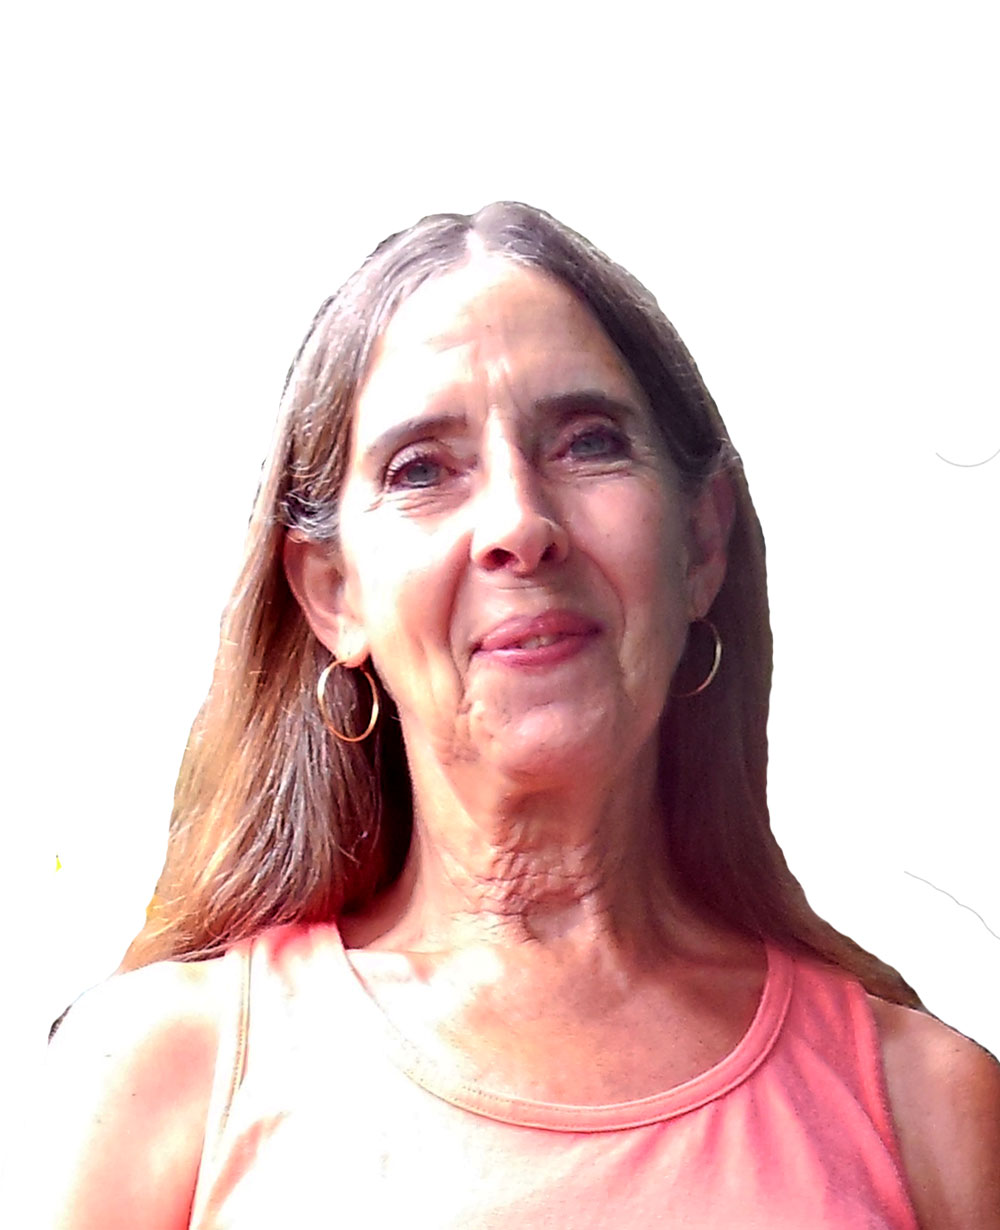 Mary Mysing-Gubala - Zone GBorn and raised in New Orleans, I have lived in Mid-City since 1994. I have a Ph.D. in Biology, taught for 40 years and happily retired in 2015, which has given me time to indulge in hobbies such as gardening, reading for fun, and traveling. It has also given me more time to volunteer with organizations that strive to improve our community, our city, our education and our environment, such as Mid-City Neighborhood Organization, SOUL (Sustaining our Urban Landscape), Louisiana Master Naturalists of Greater New Orleans and the Pontchartrain Institute for Environmental Studies. I love my city, am willing to work diligently to improve it and hope I can help others to feel the same way.